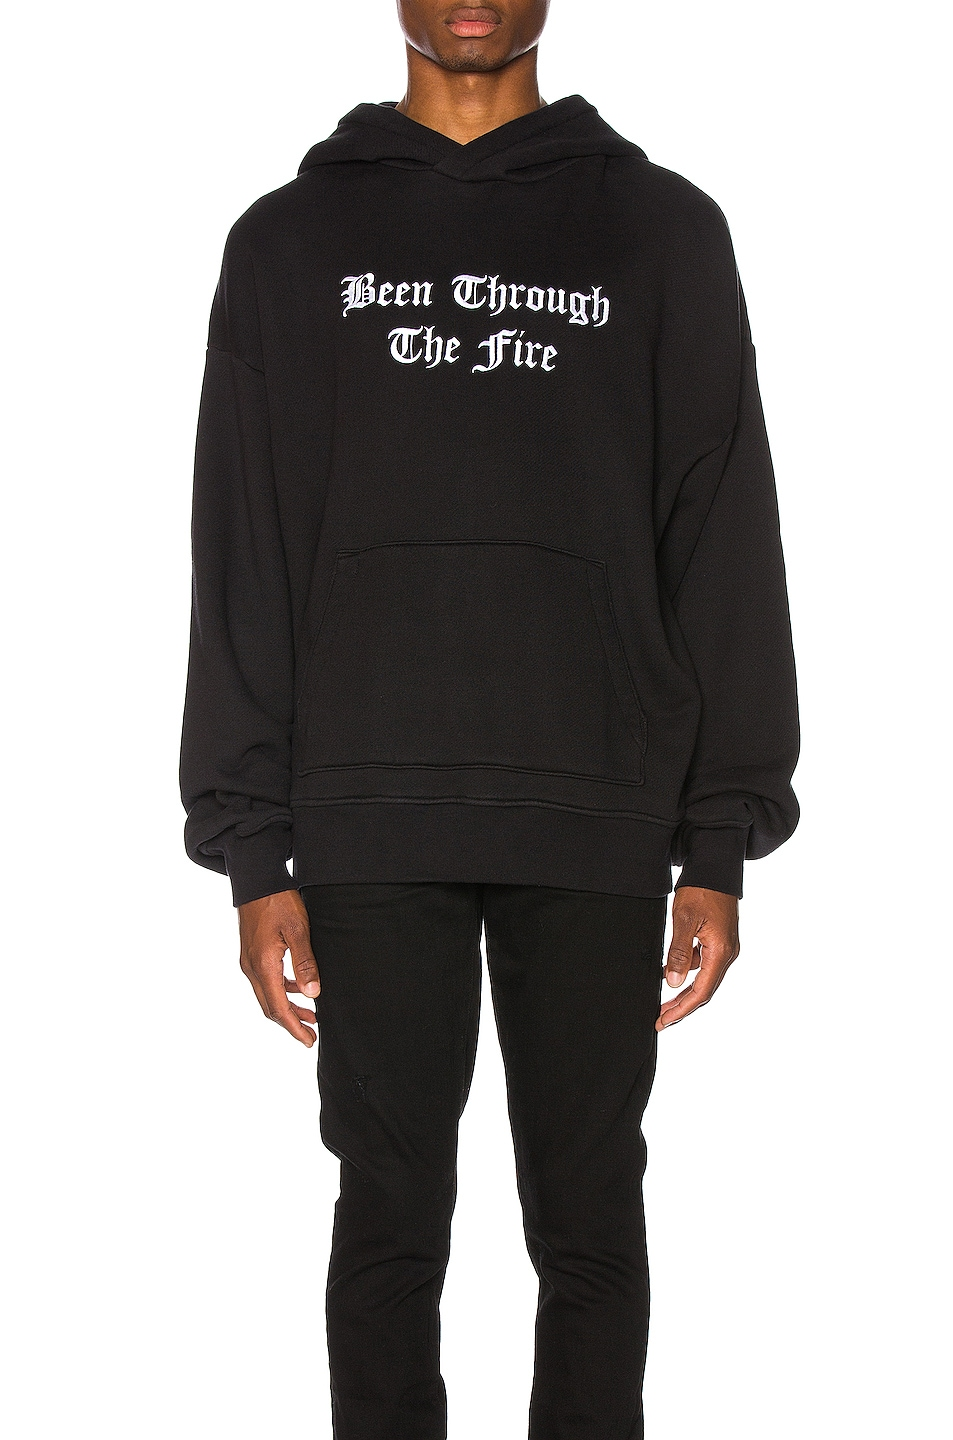 Image 1 of Amiri Been Through The Fire Hoodie in Tar